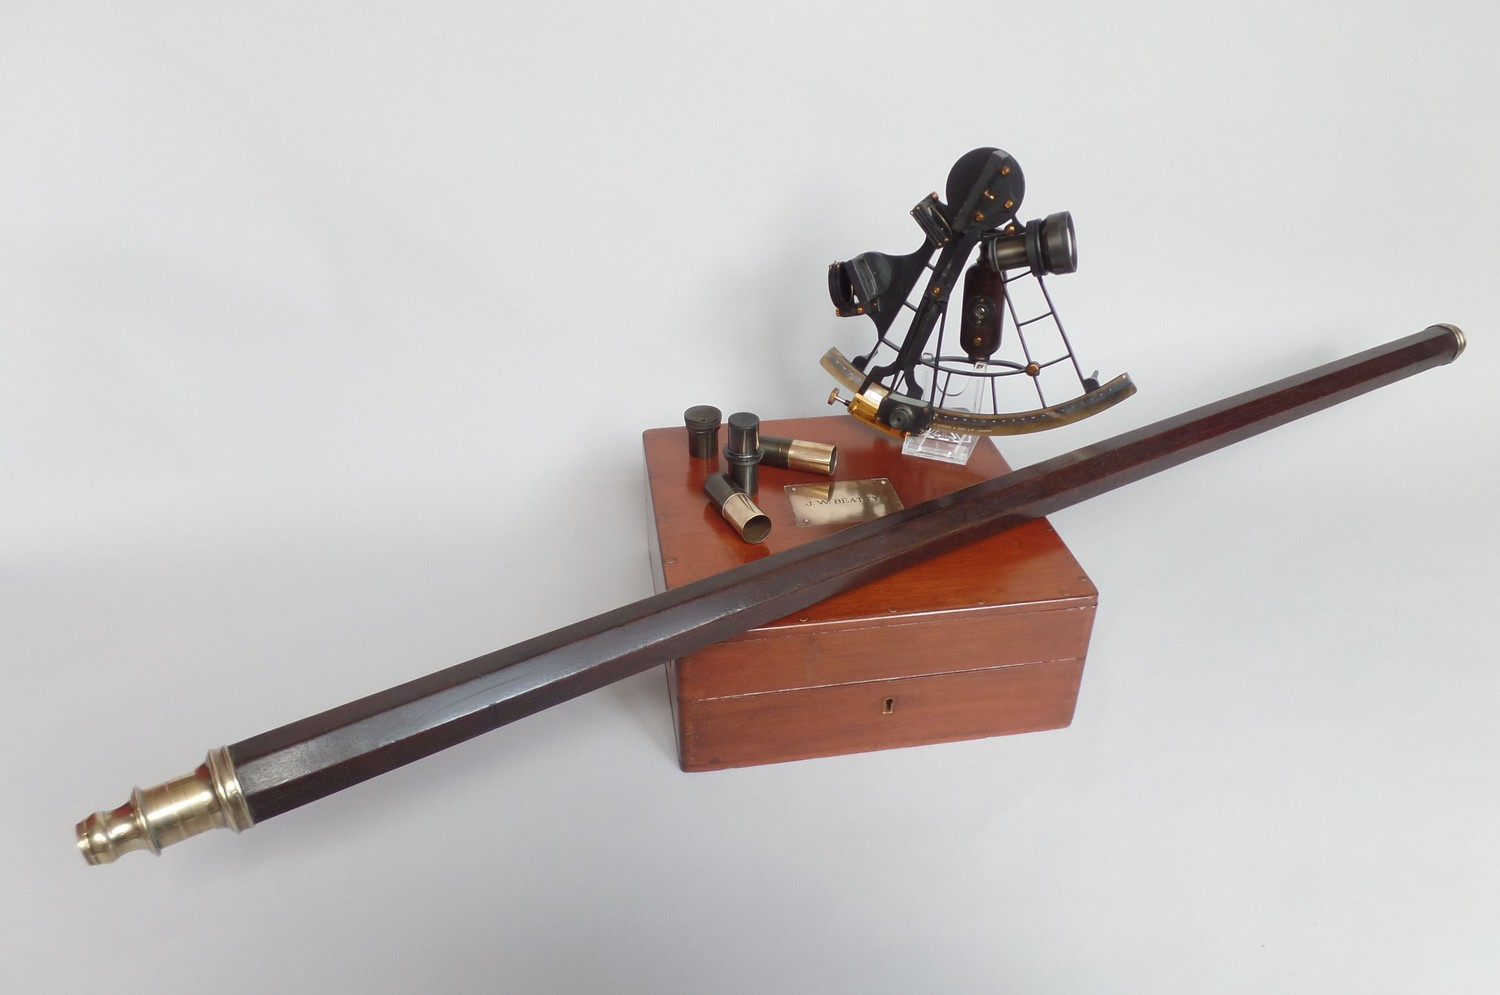 18th CENTURY OCTAGONAL TELESCOPE SIGNED - EDWARD NAIRNE LONDON